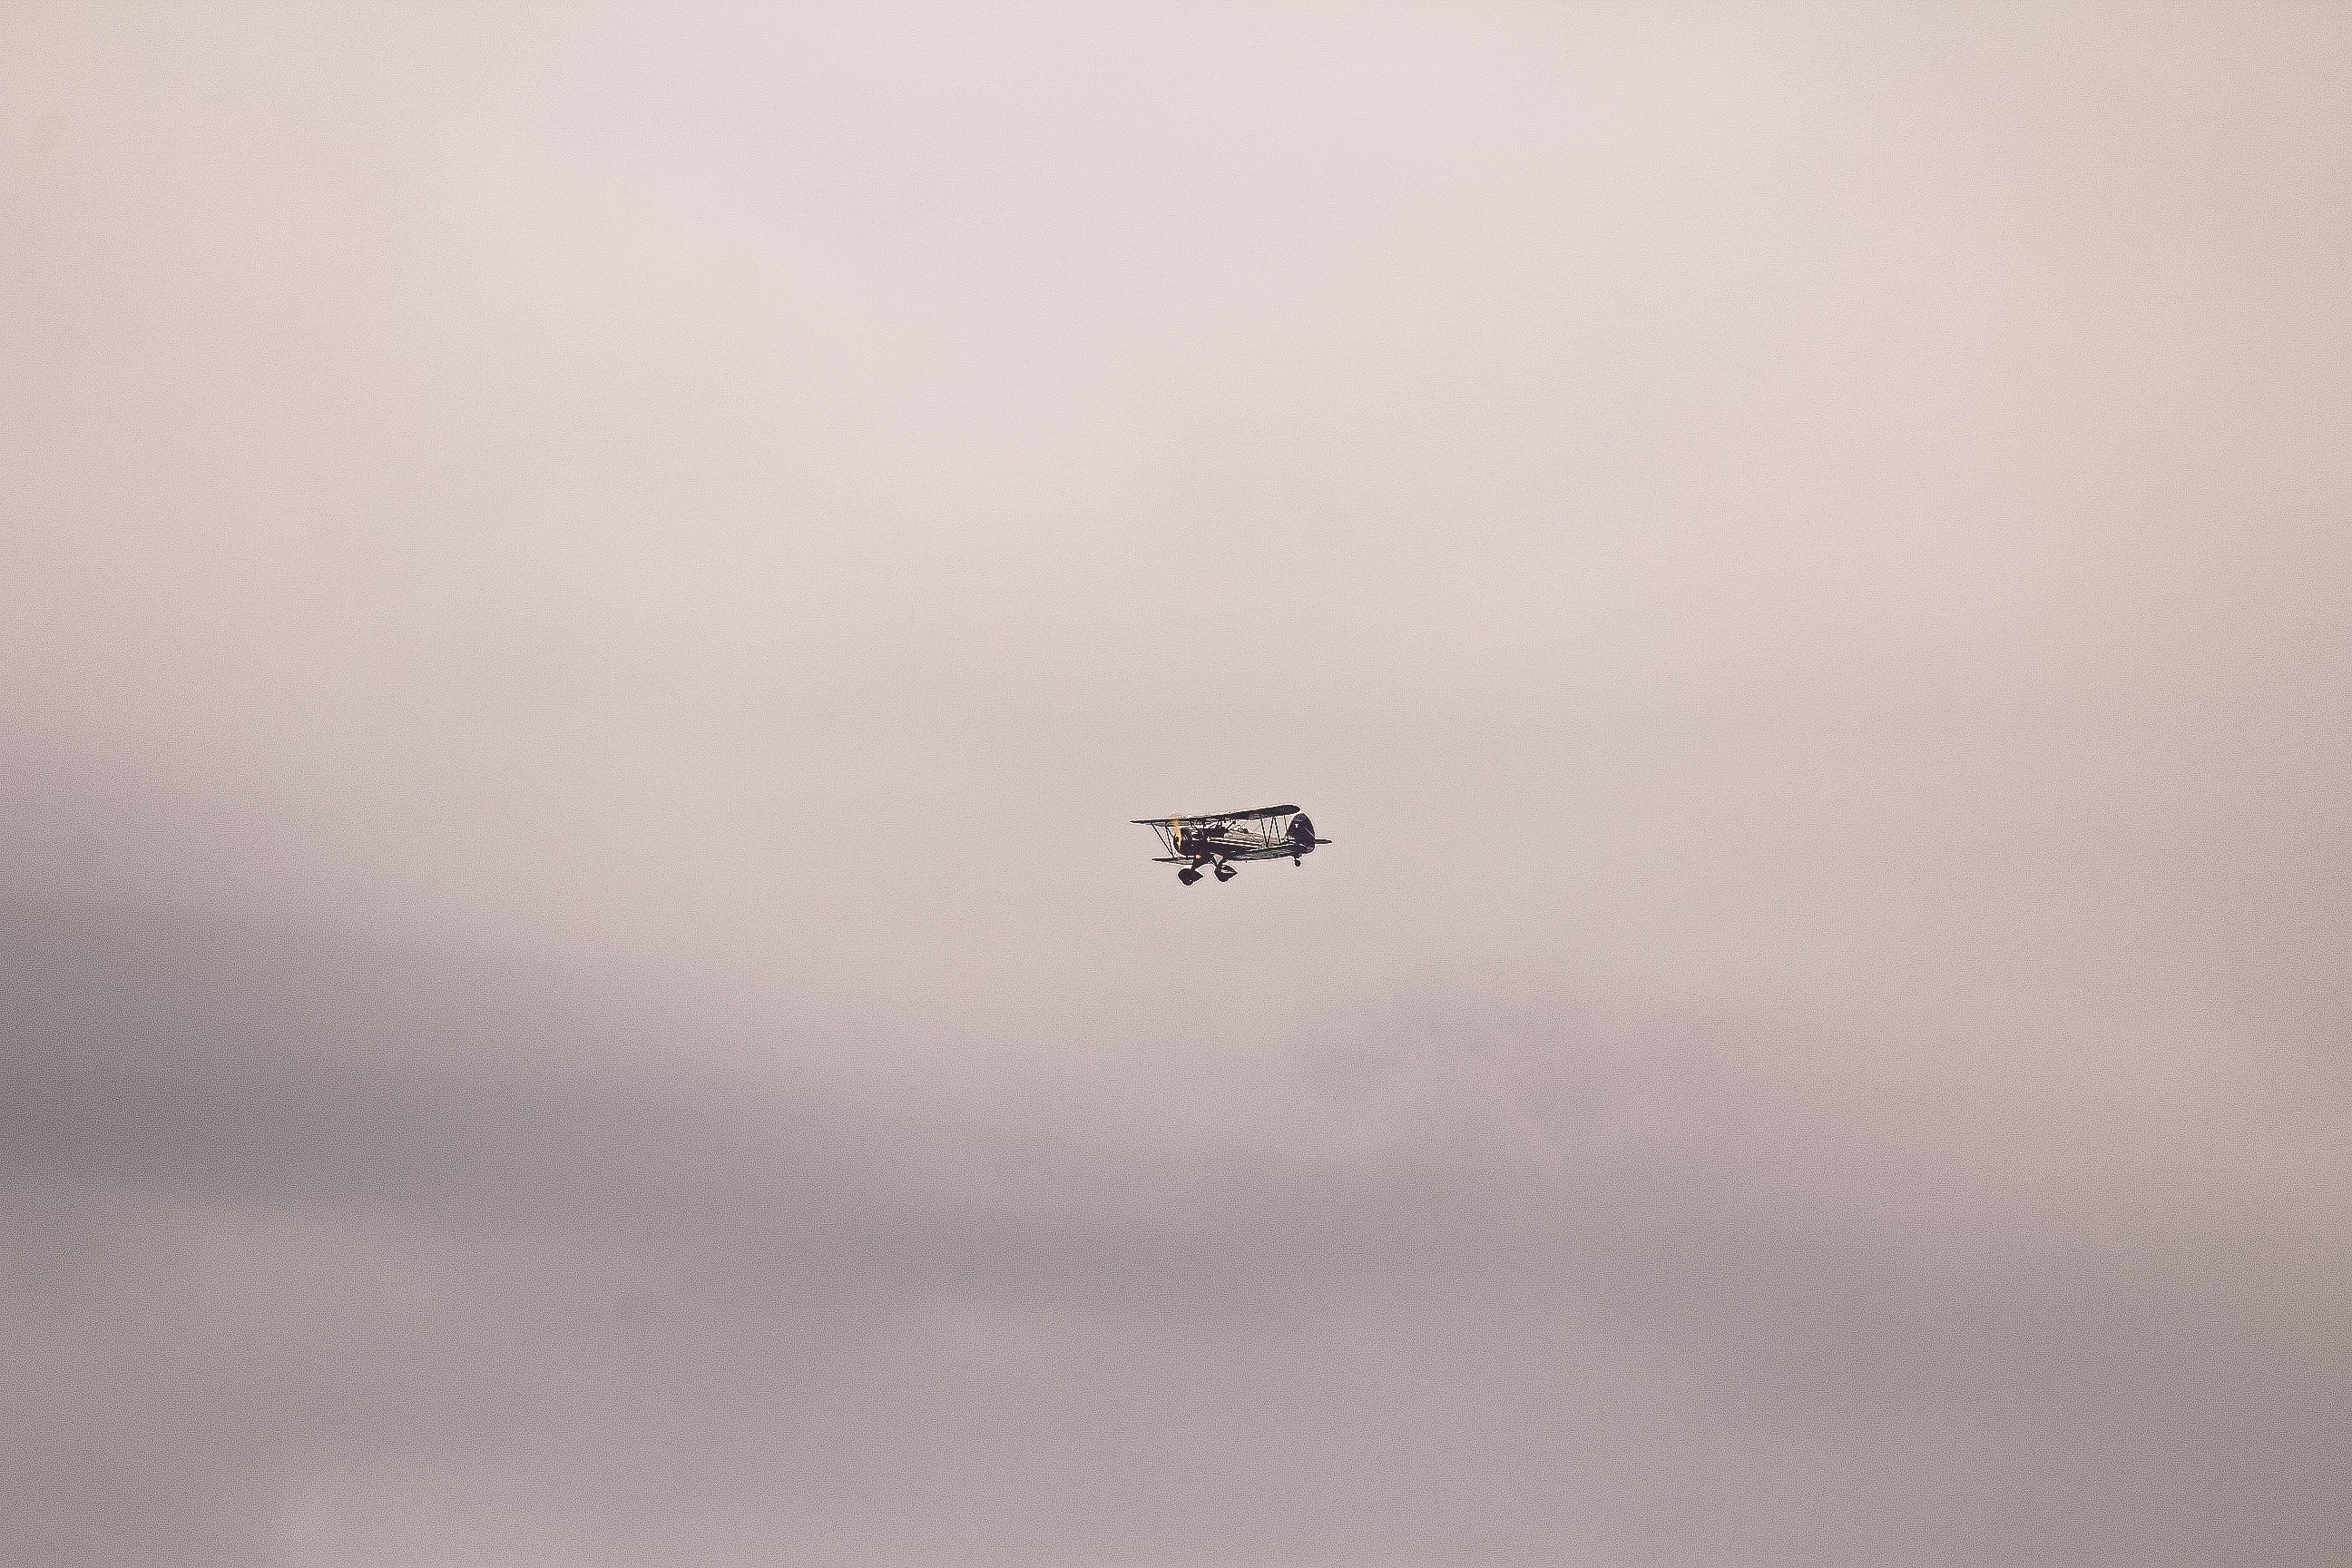 Gray and Black Biplane, Aeroplane, Fly, Transportation system, Technology, HQ Photo